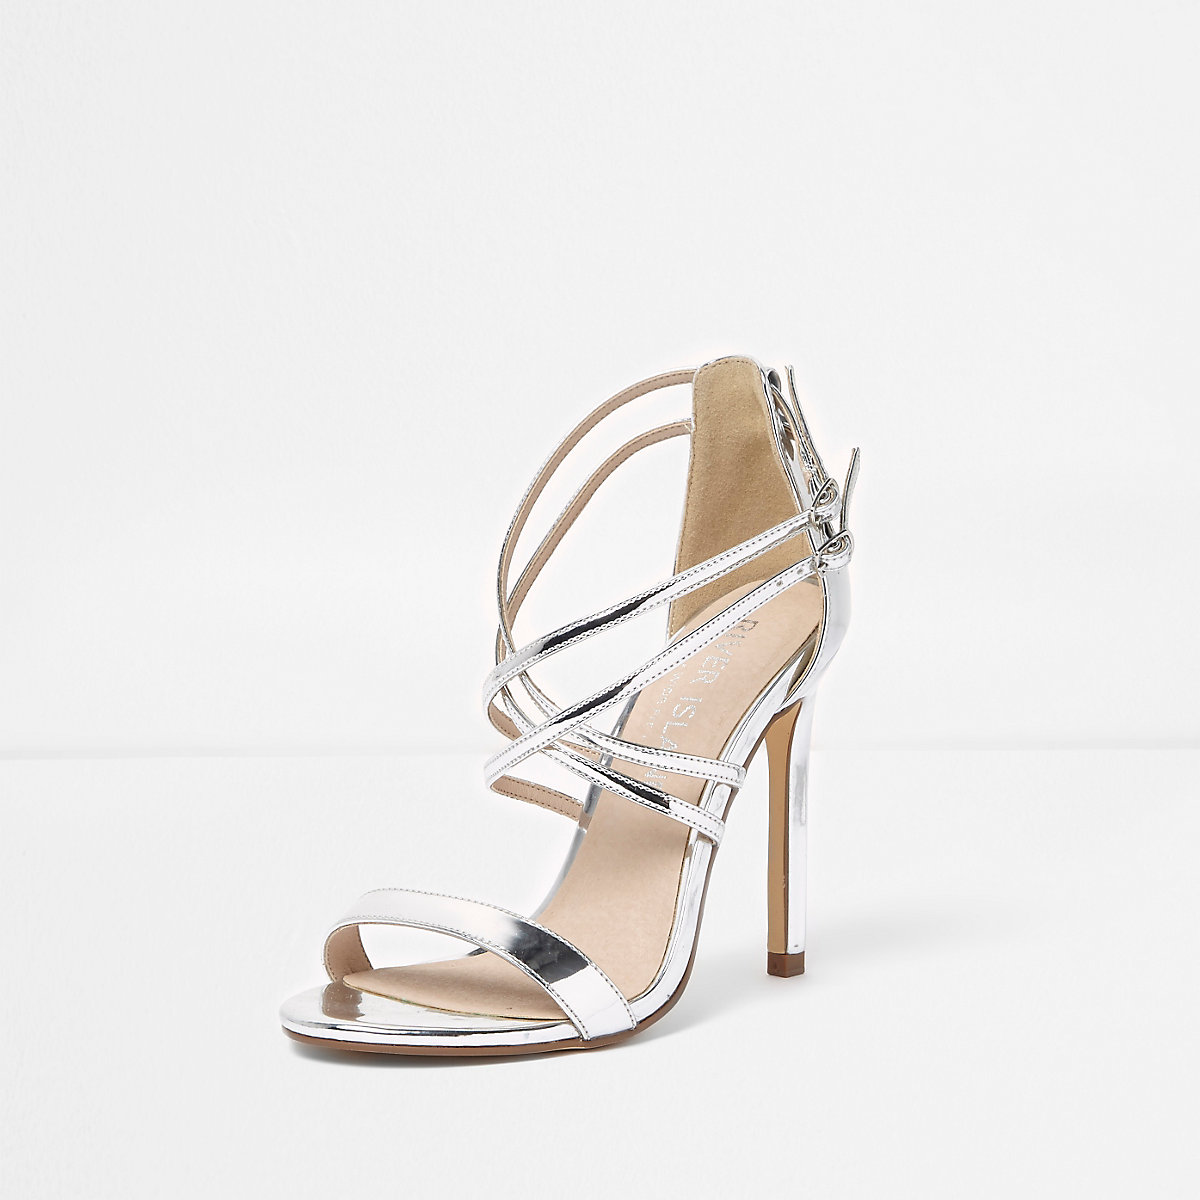 6d60b77660f5 Silver caged strappy wide fit sandals - Sandals - Shoes   Boots - women